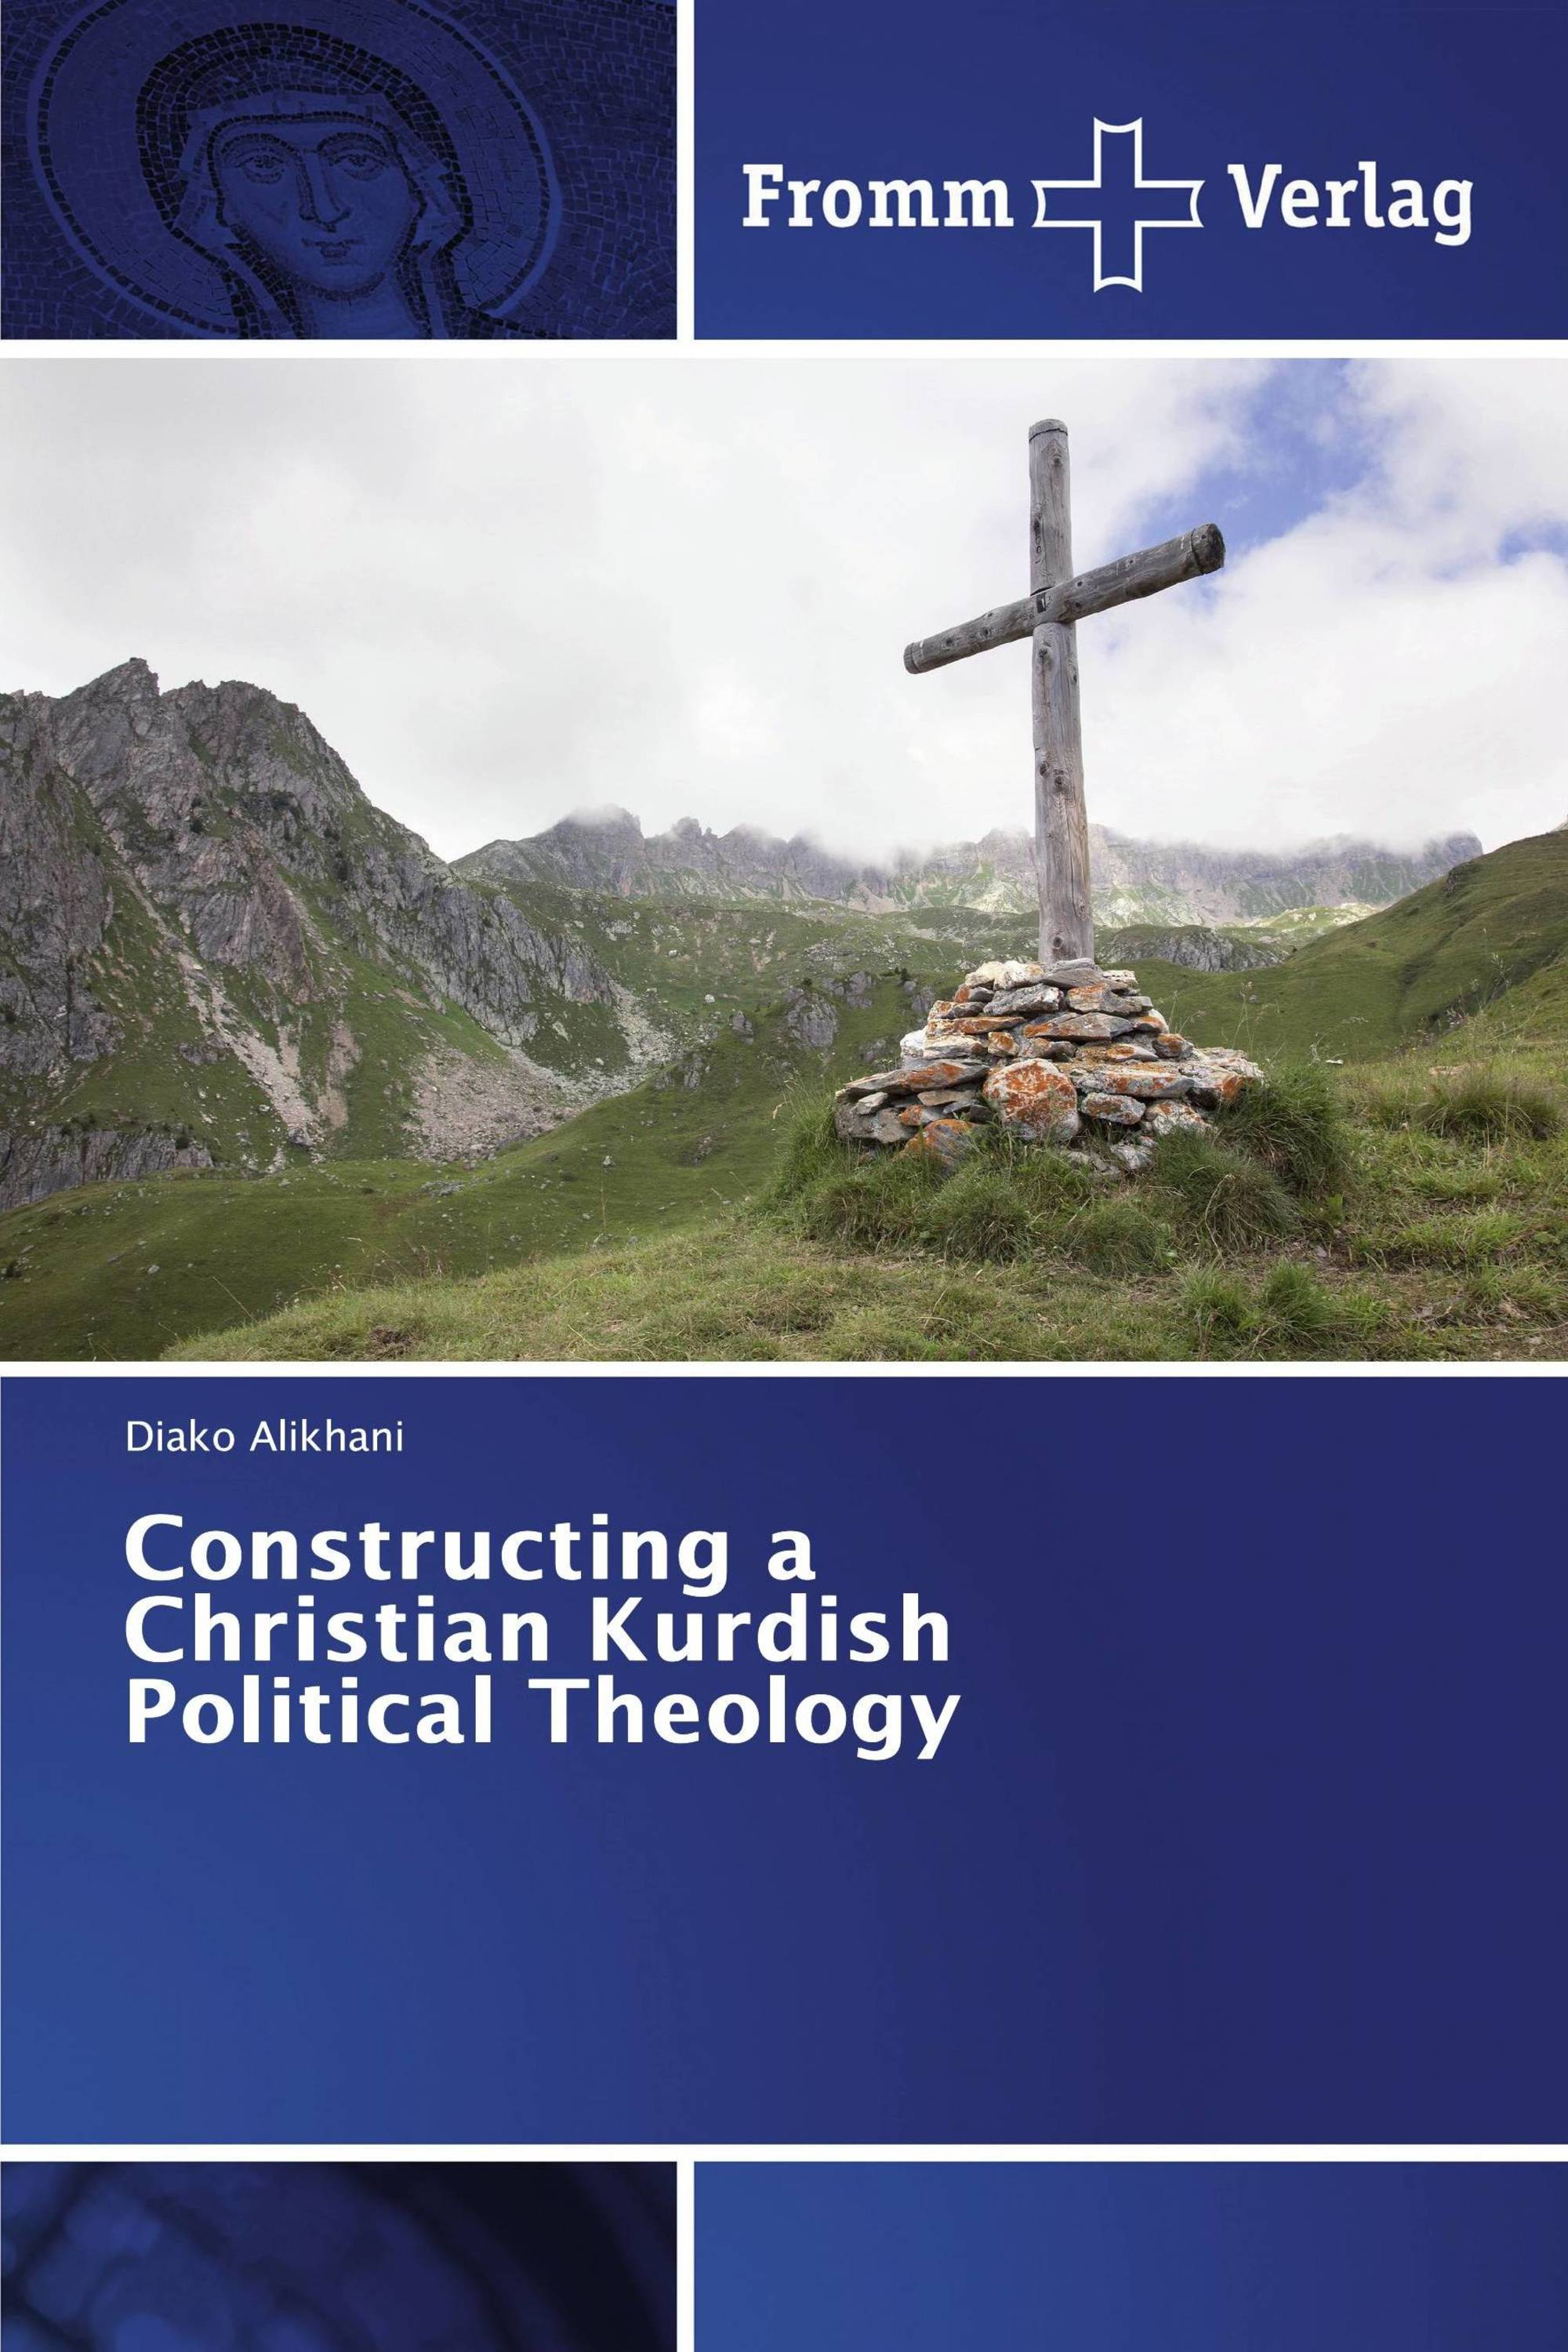 Constructing a Christian Kurdish Political Theology